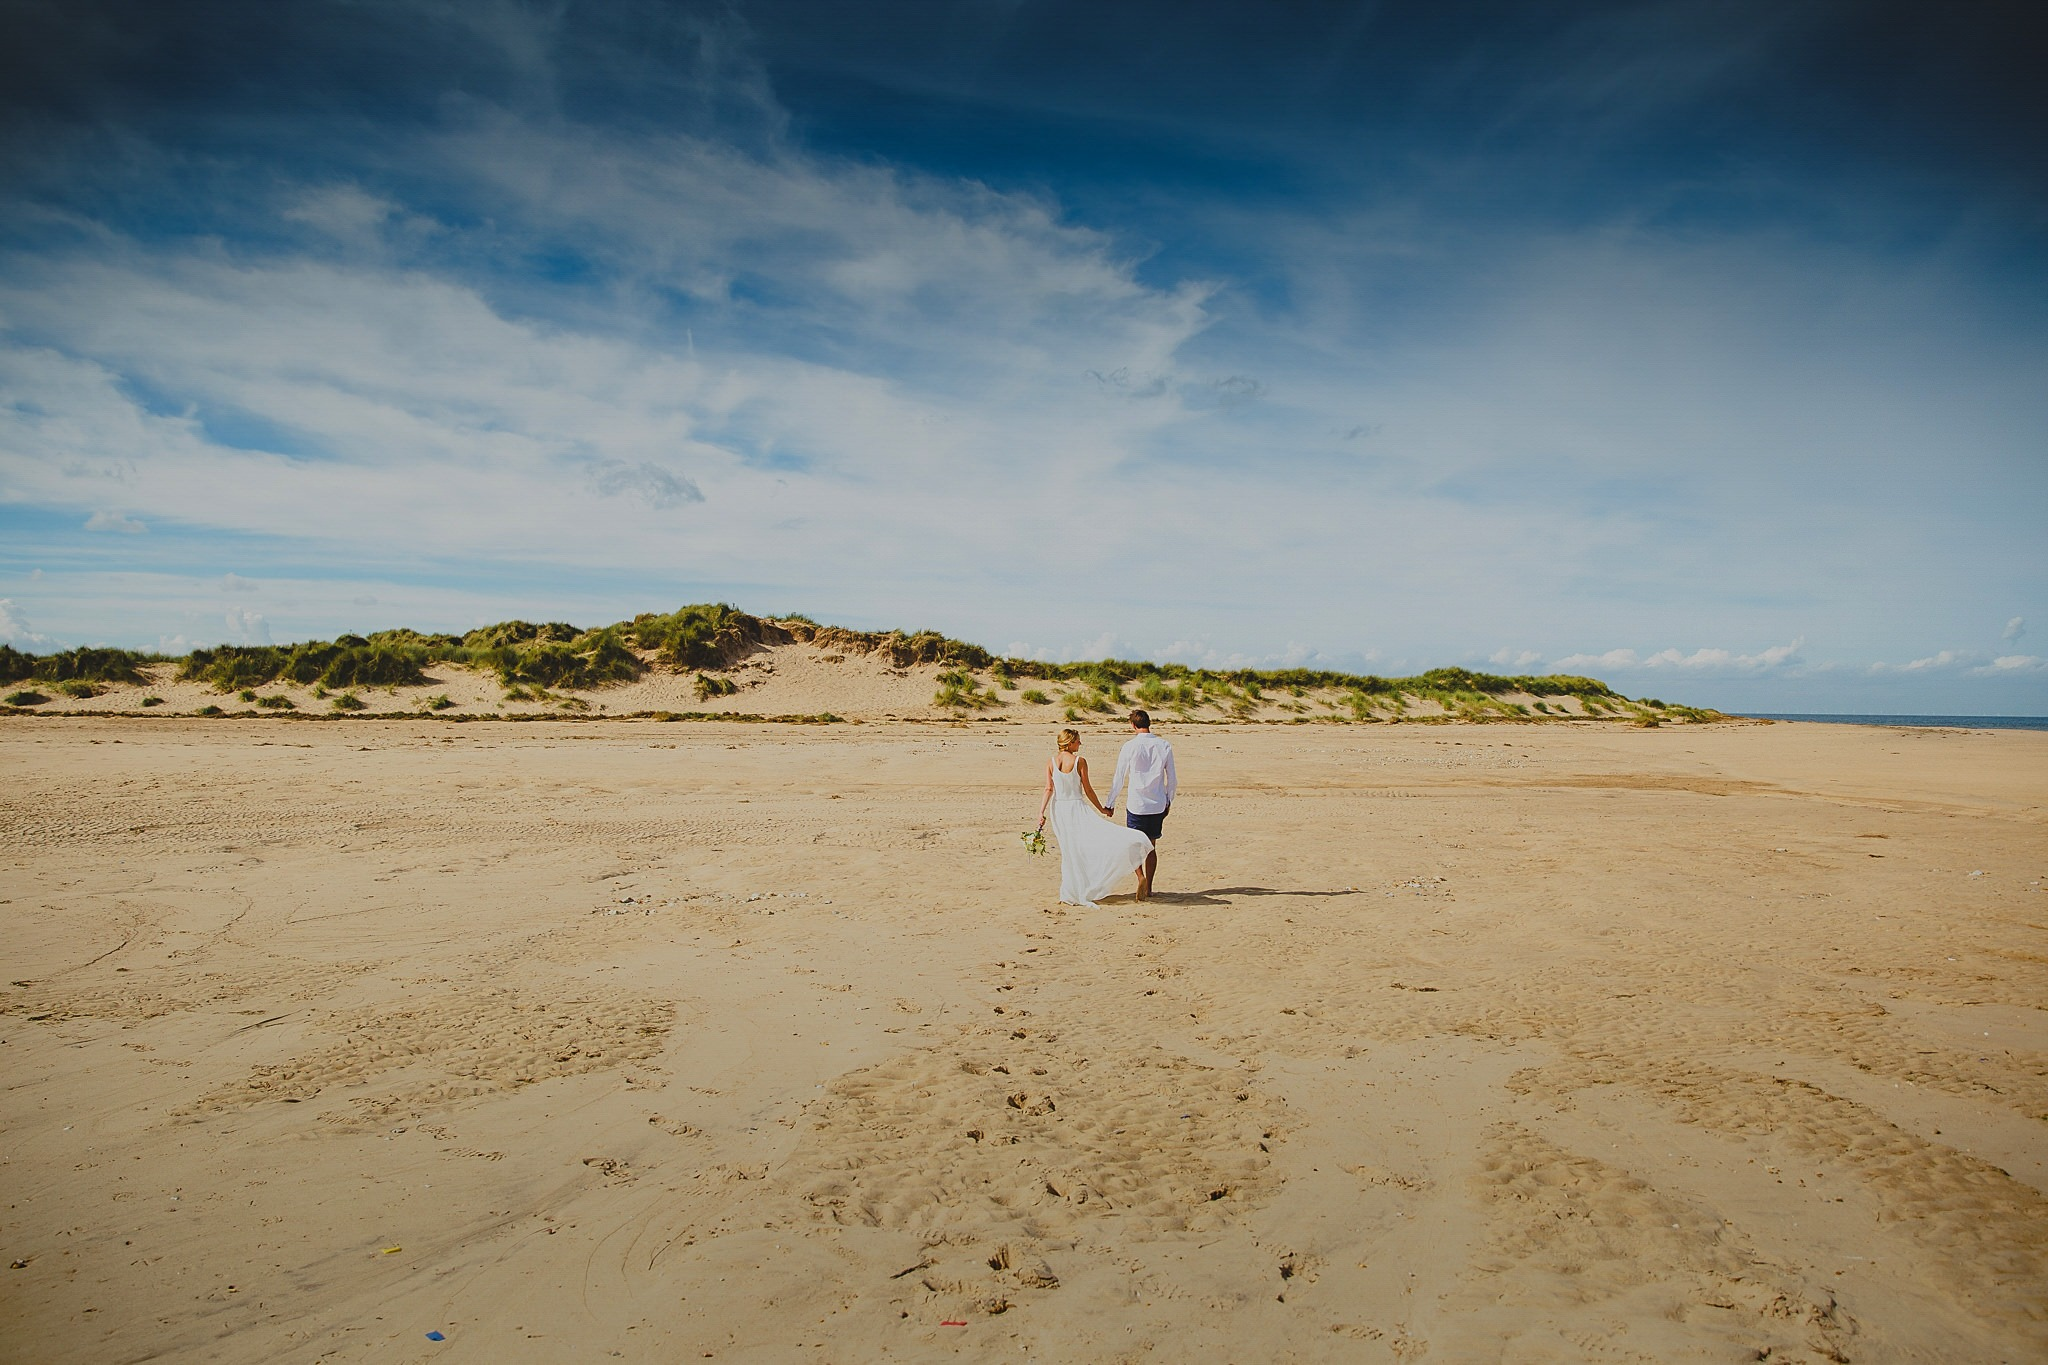 Destination Wedding Photography on a beach